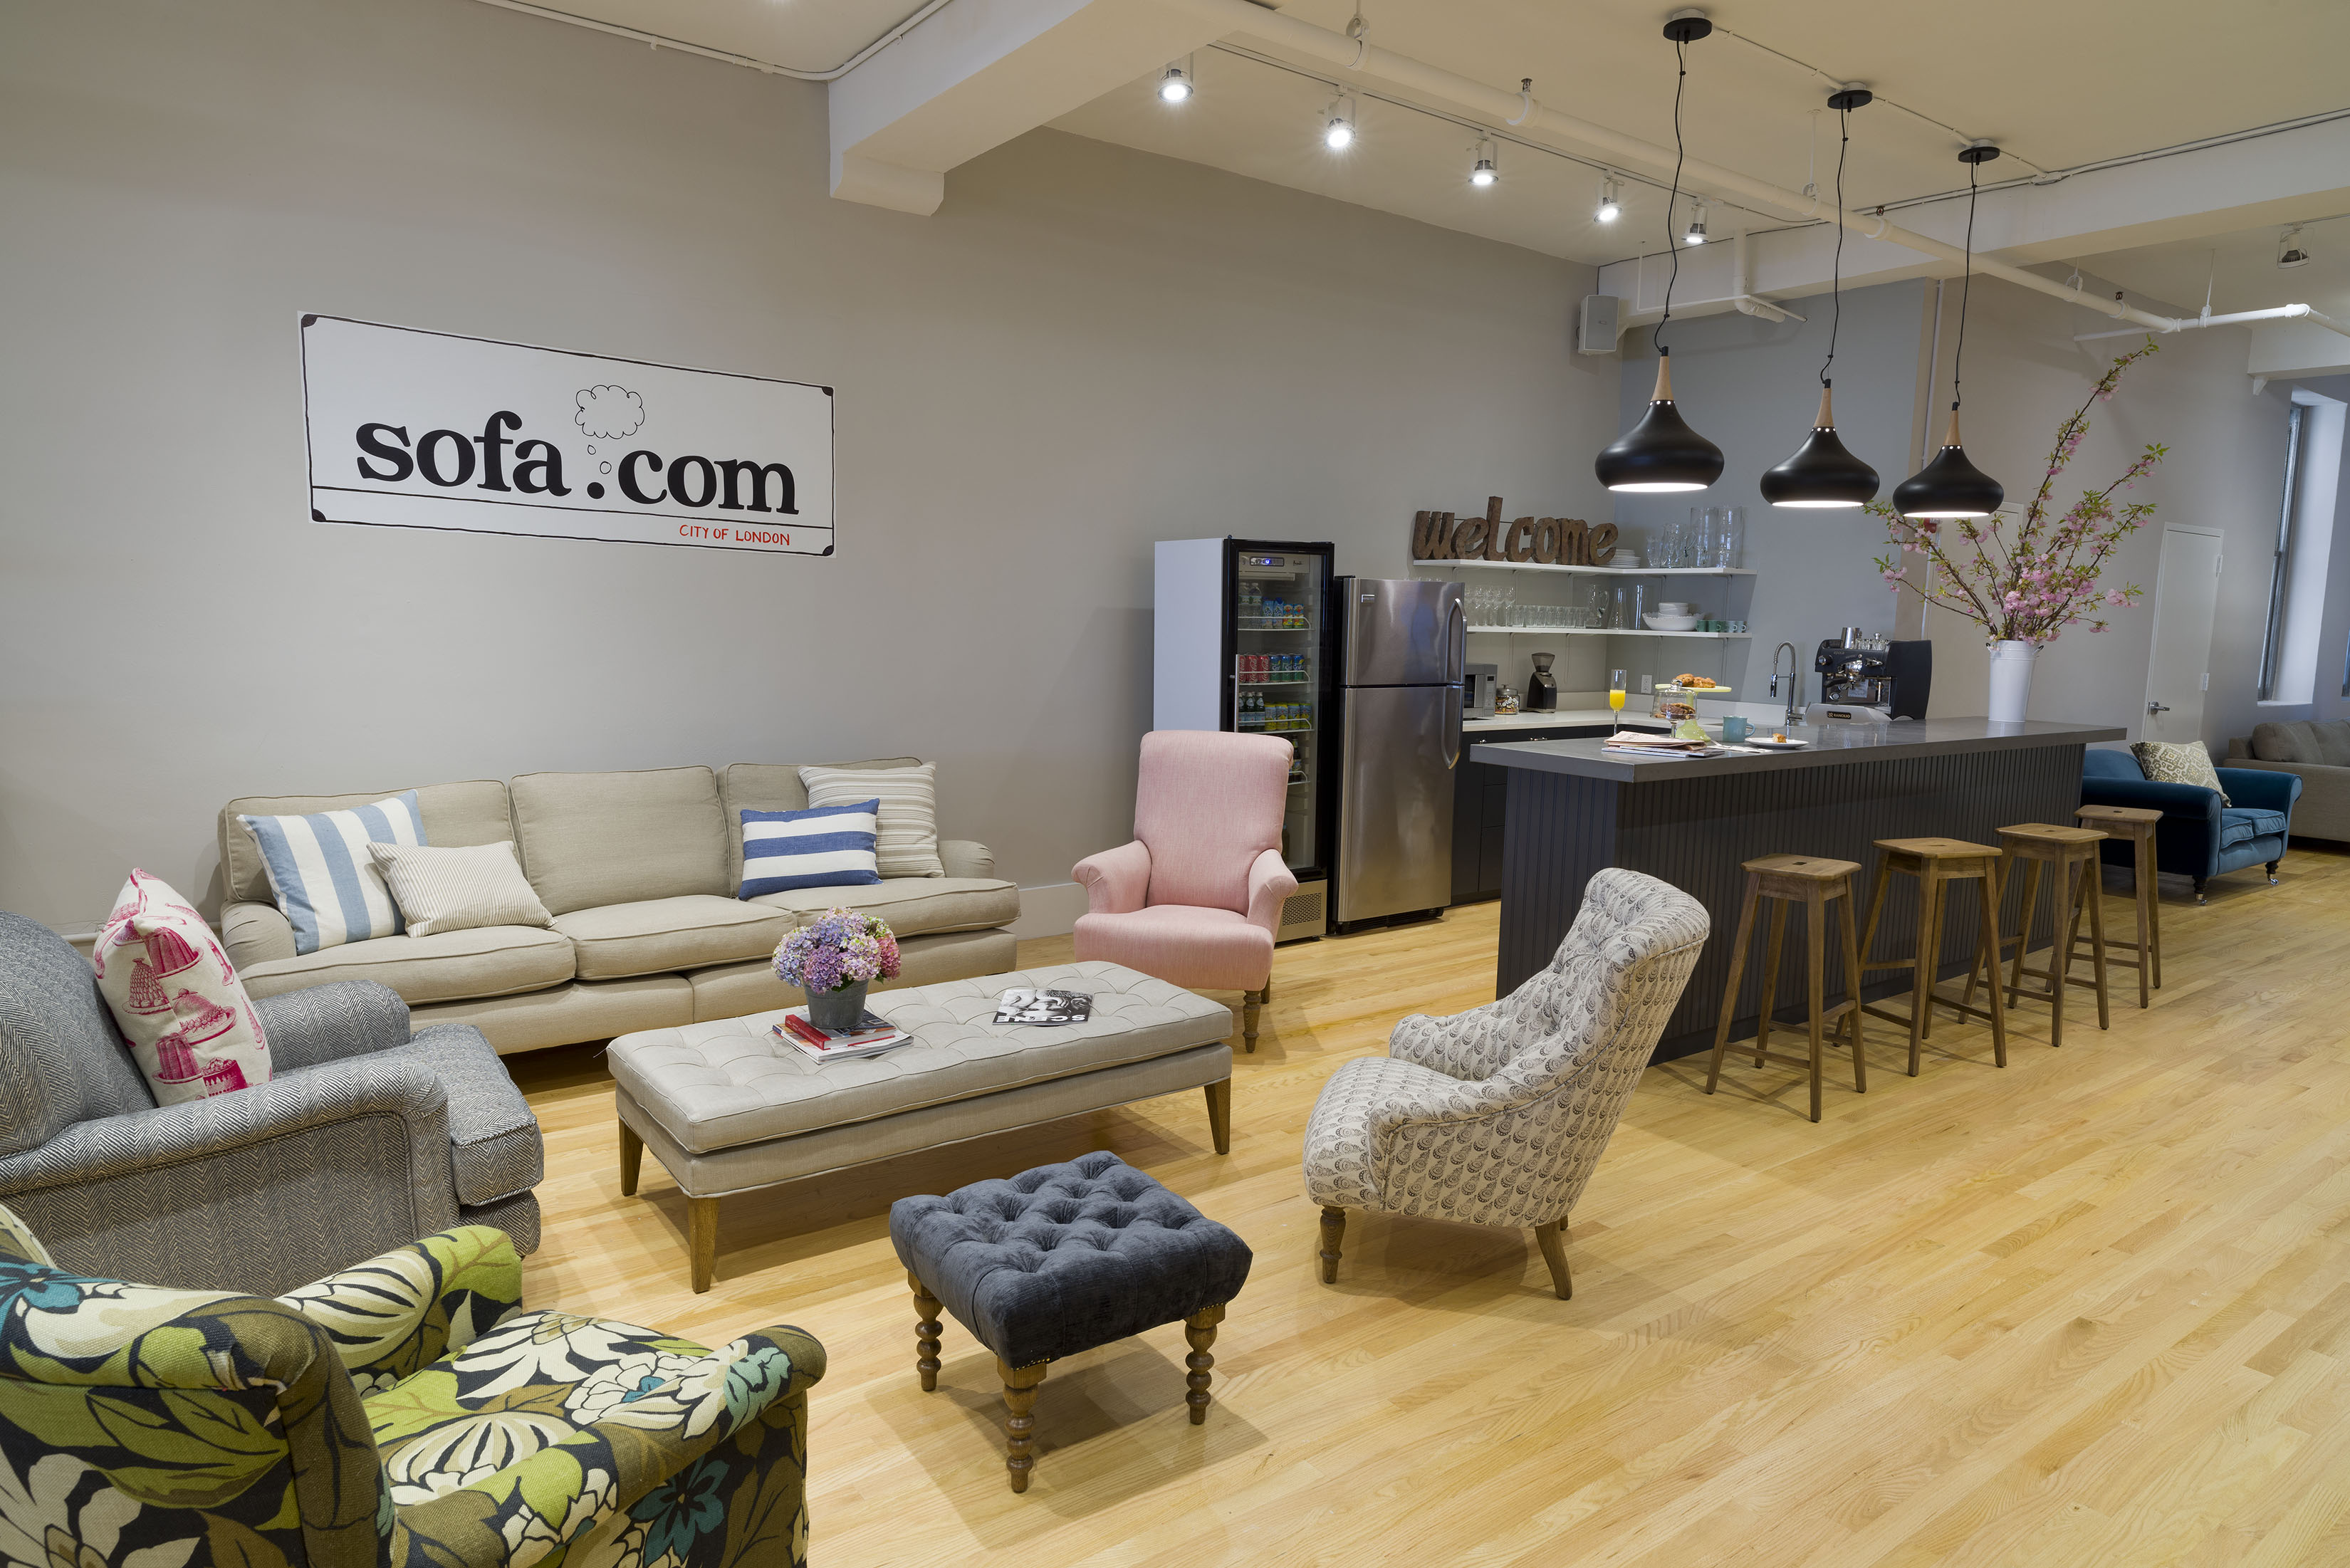 sectional sofas nyc showroom sofa designs catalogue takes innovative approach to furniture retail